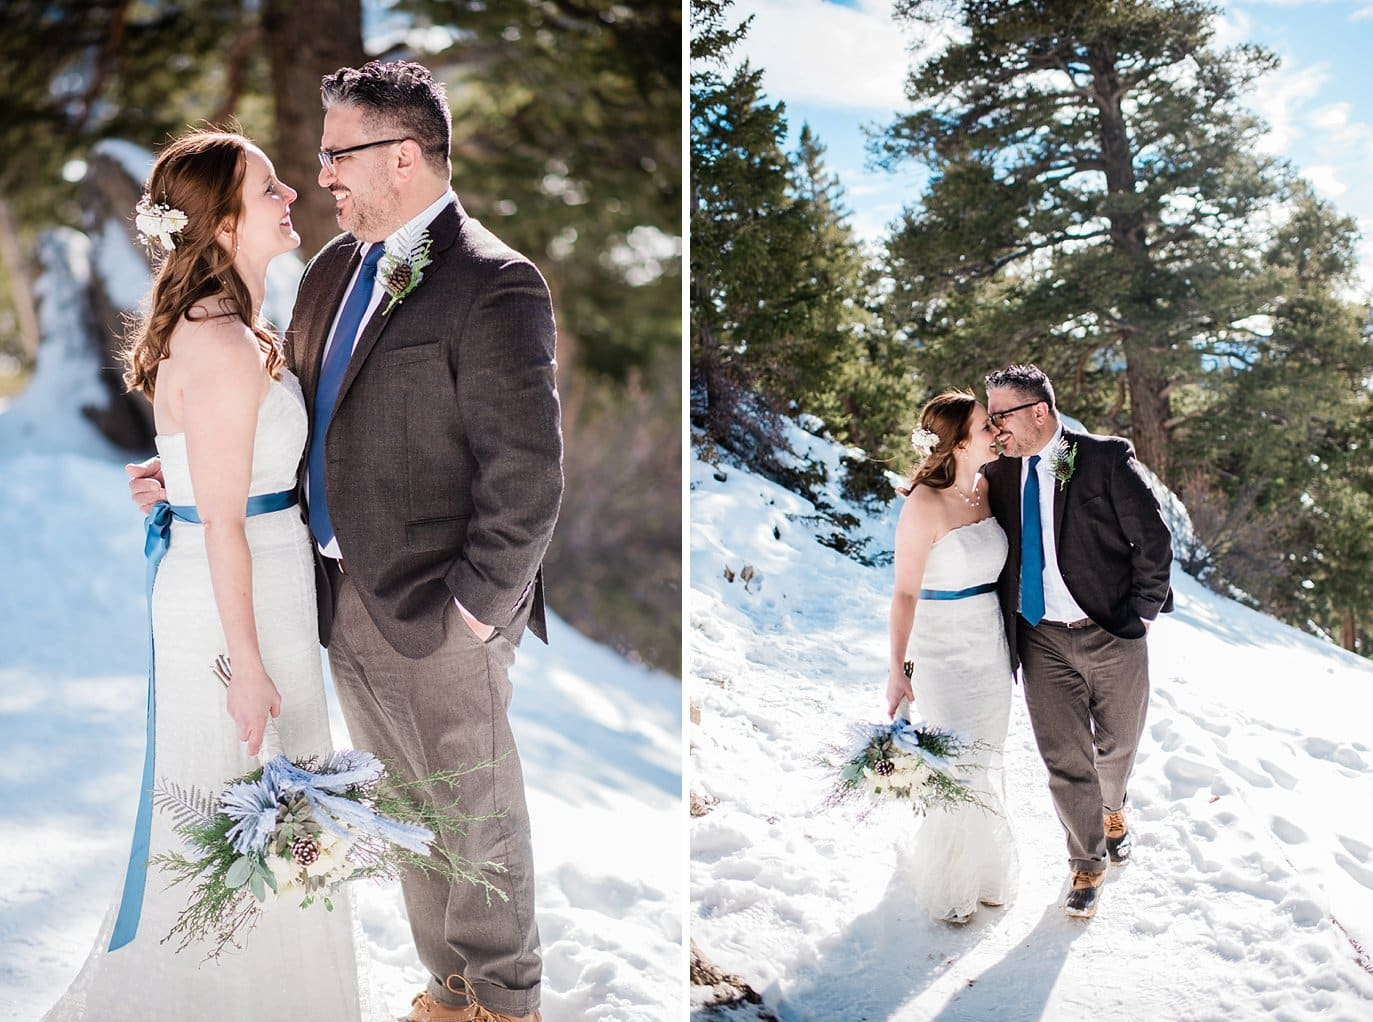 Bride in lace dress with blue sash and groom in snow at winter Sapphire Point Elopement by Keystone wedding photographer Jennie Crate Photographer